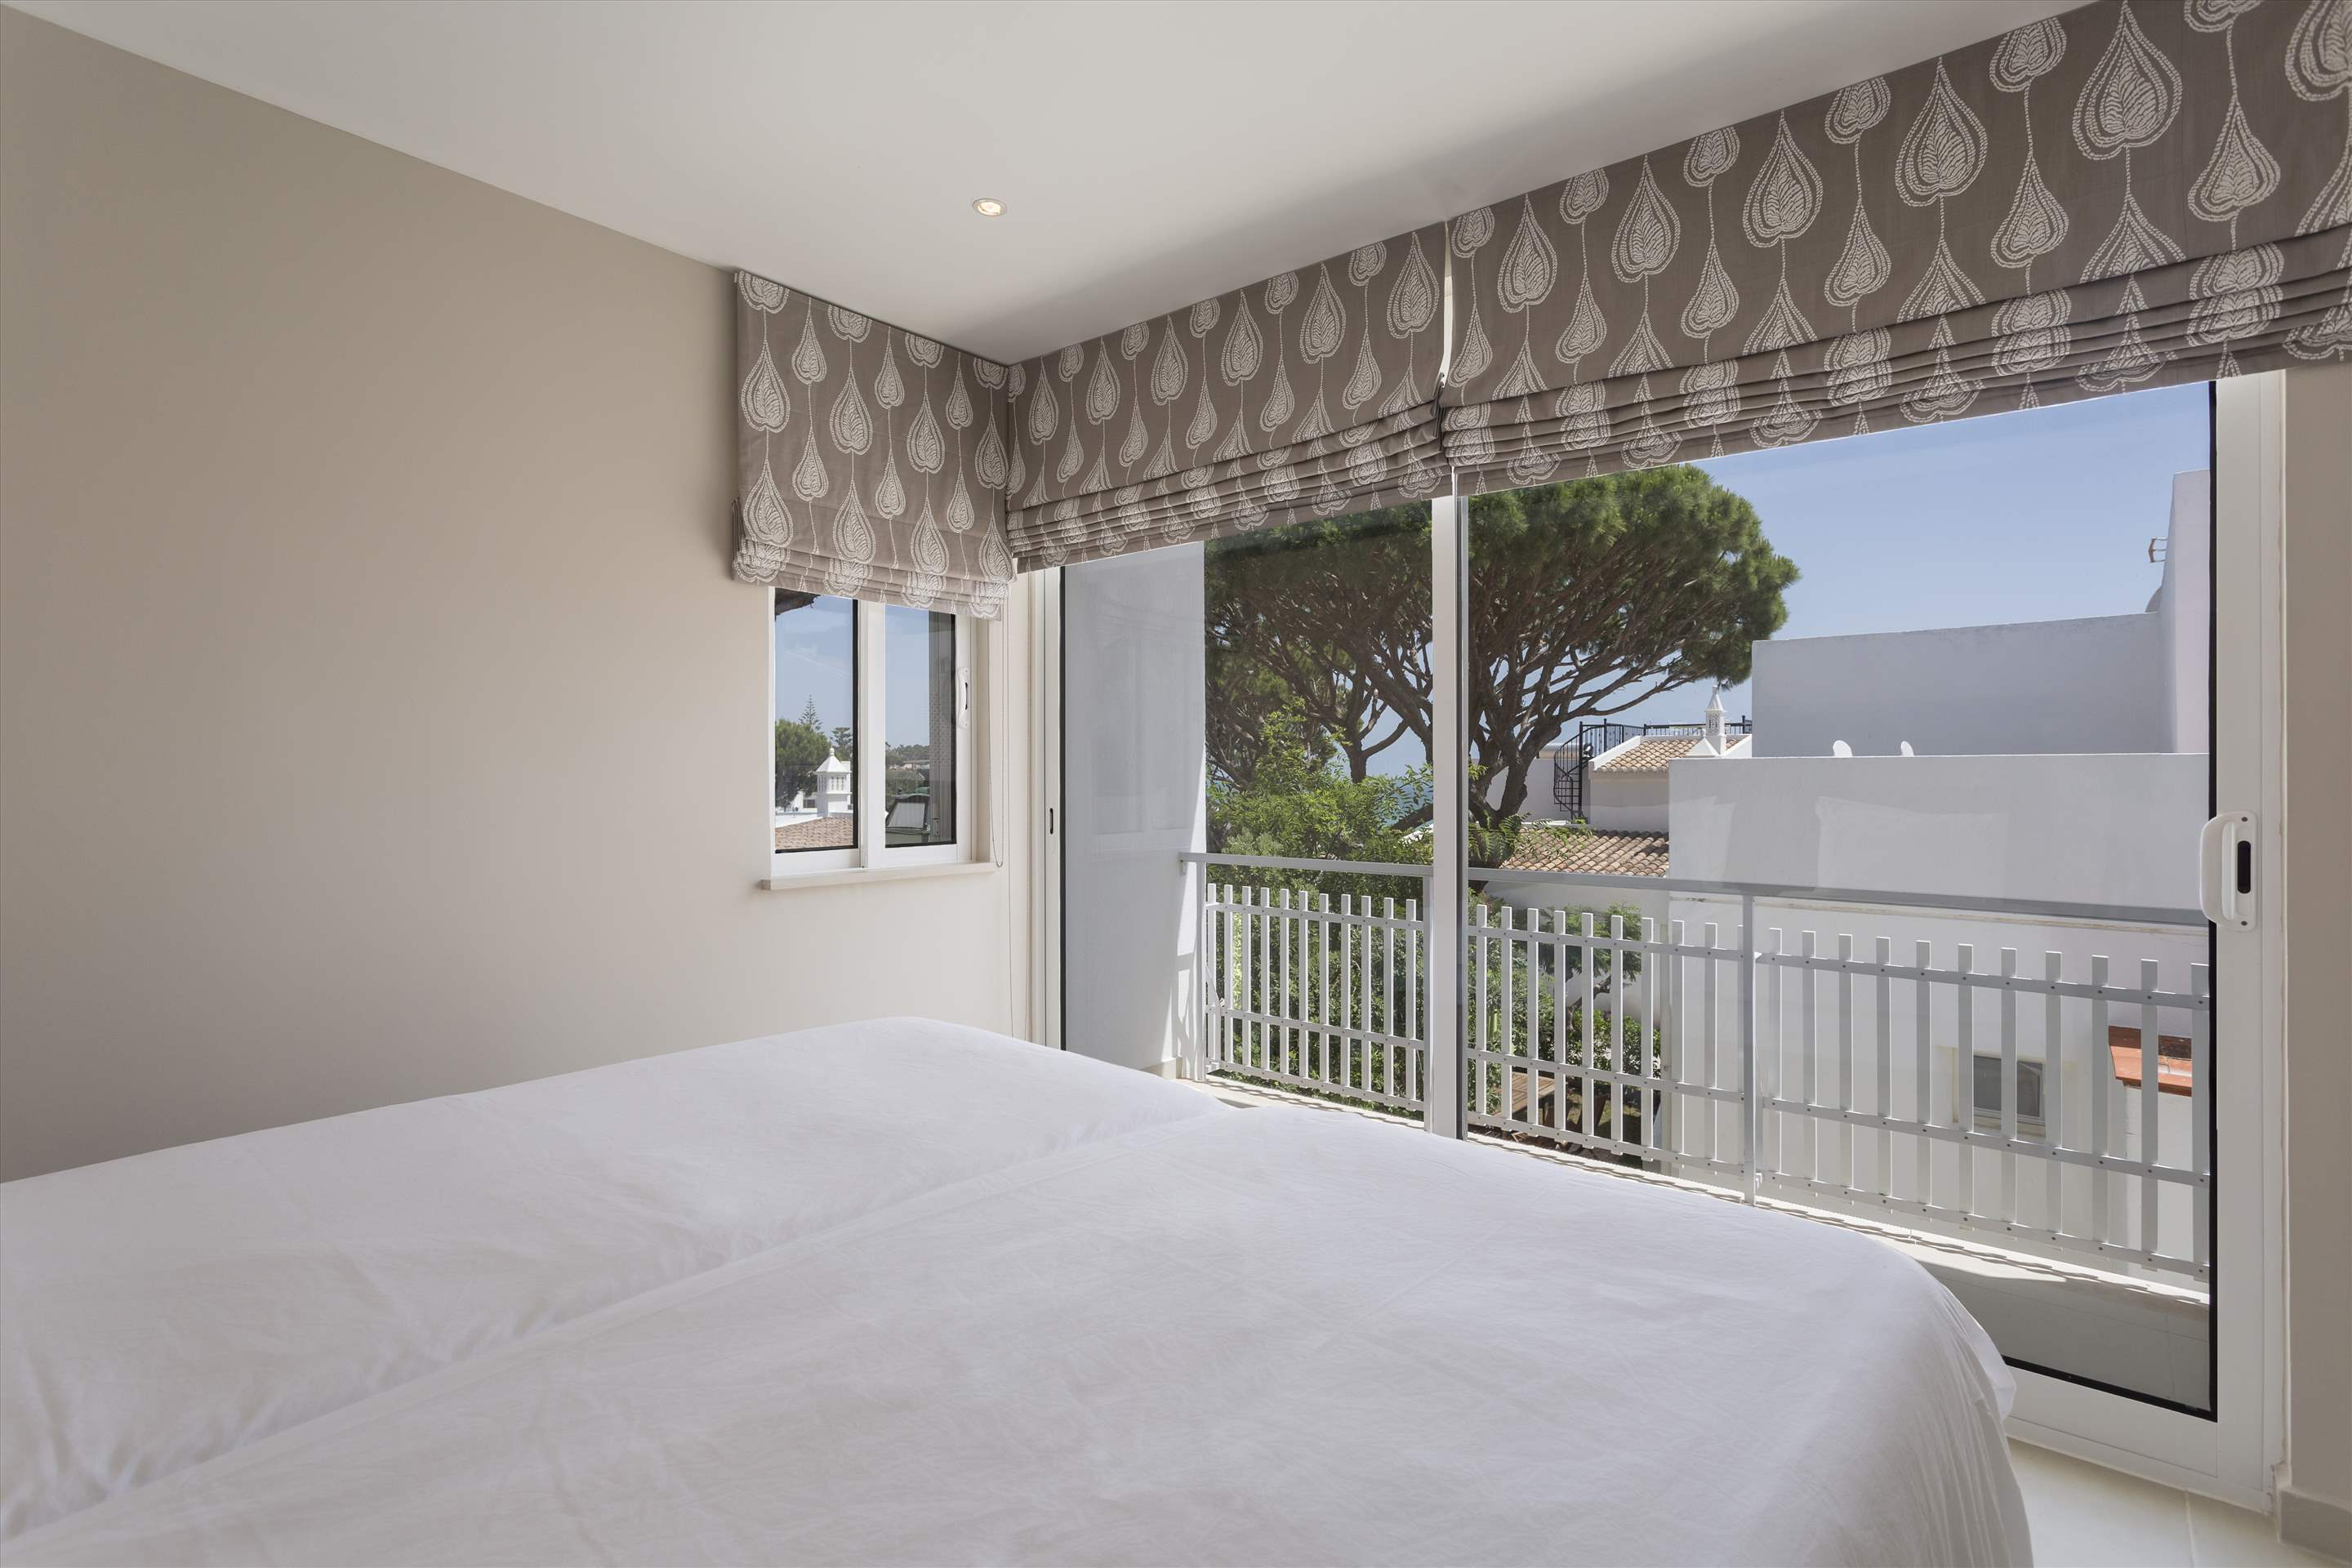 Villa Clemente, 2 bedroom villa in Vale do Lobo, Algarve Photo #12